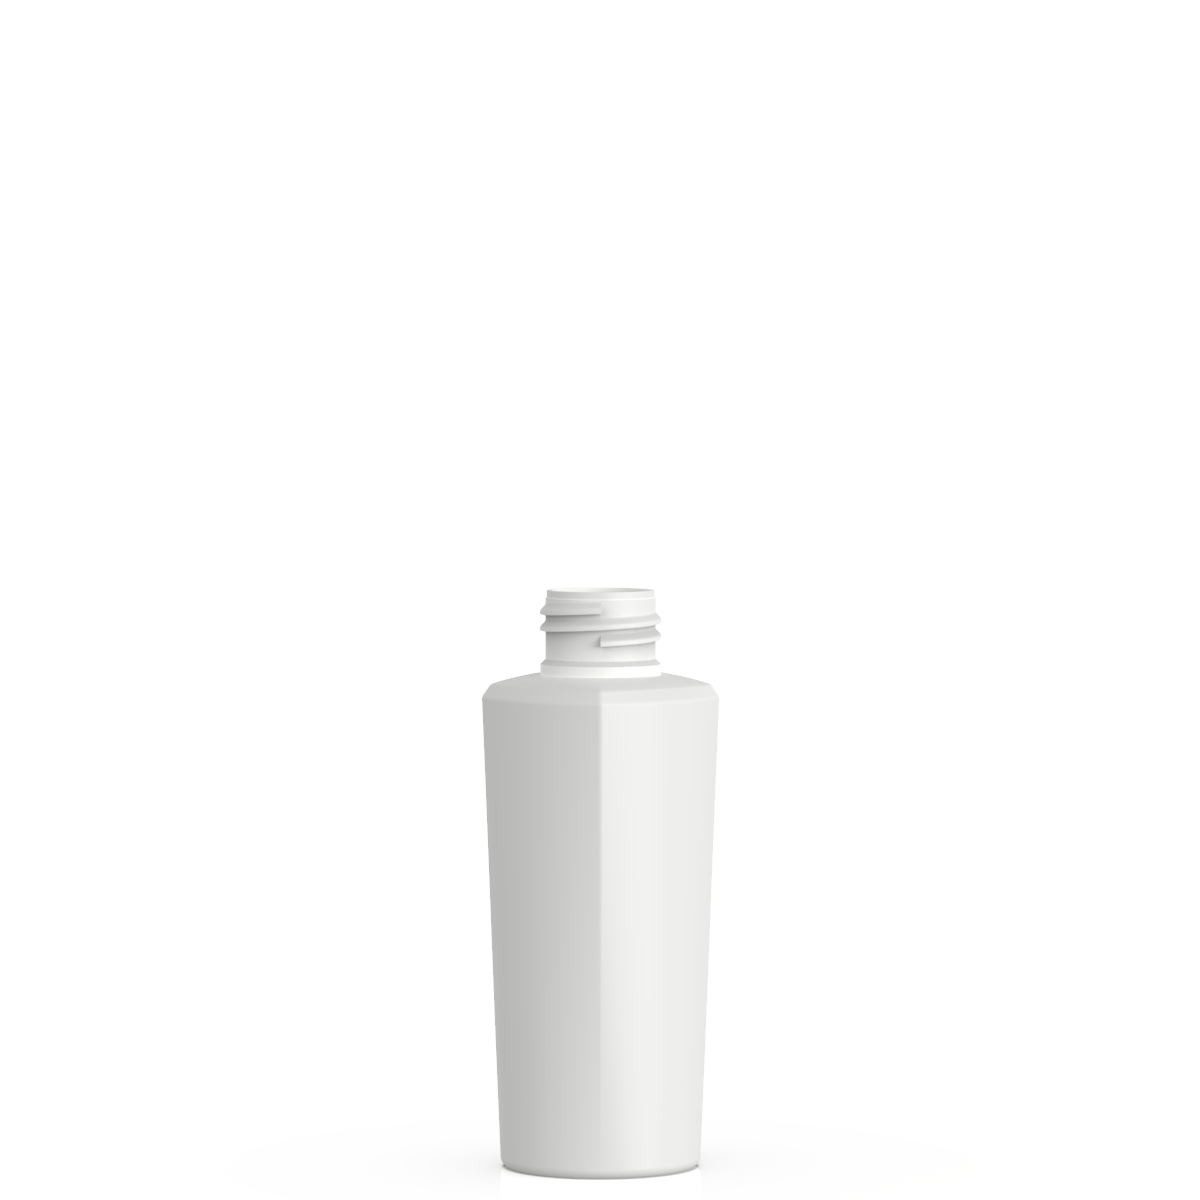 Semi-cylindrical bottle 100 ml HDPE/PP, neck 24/410, style LOS ANGELES